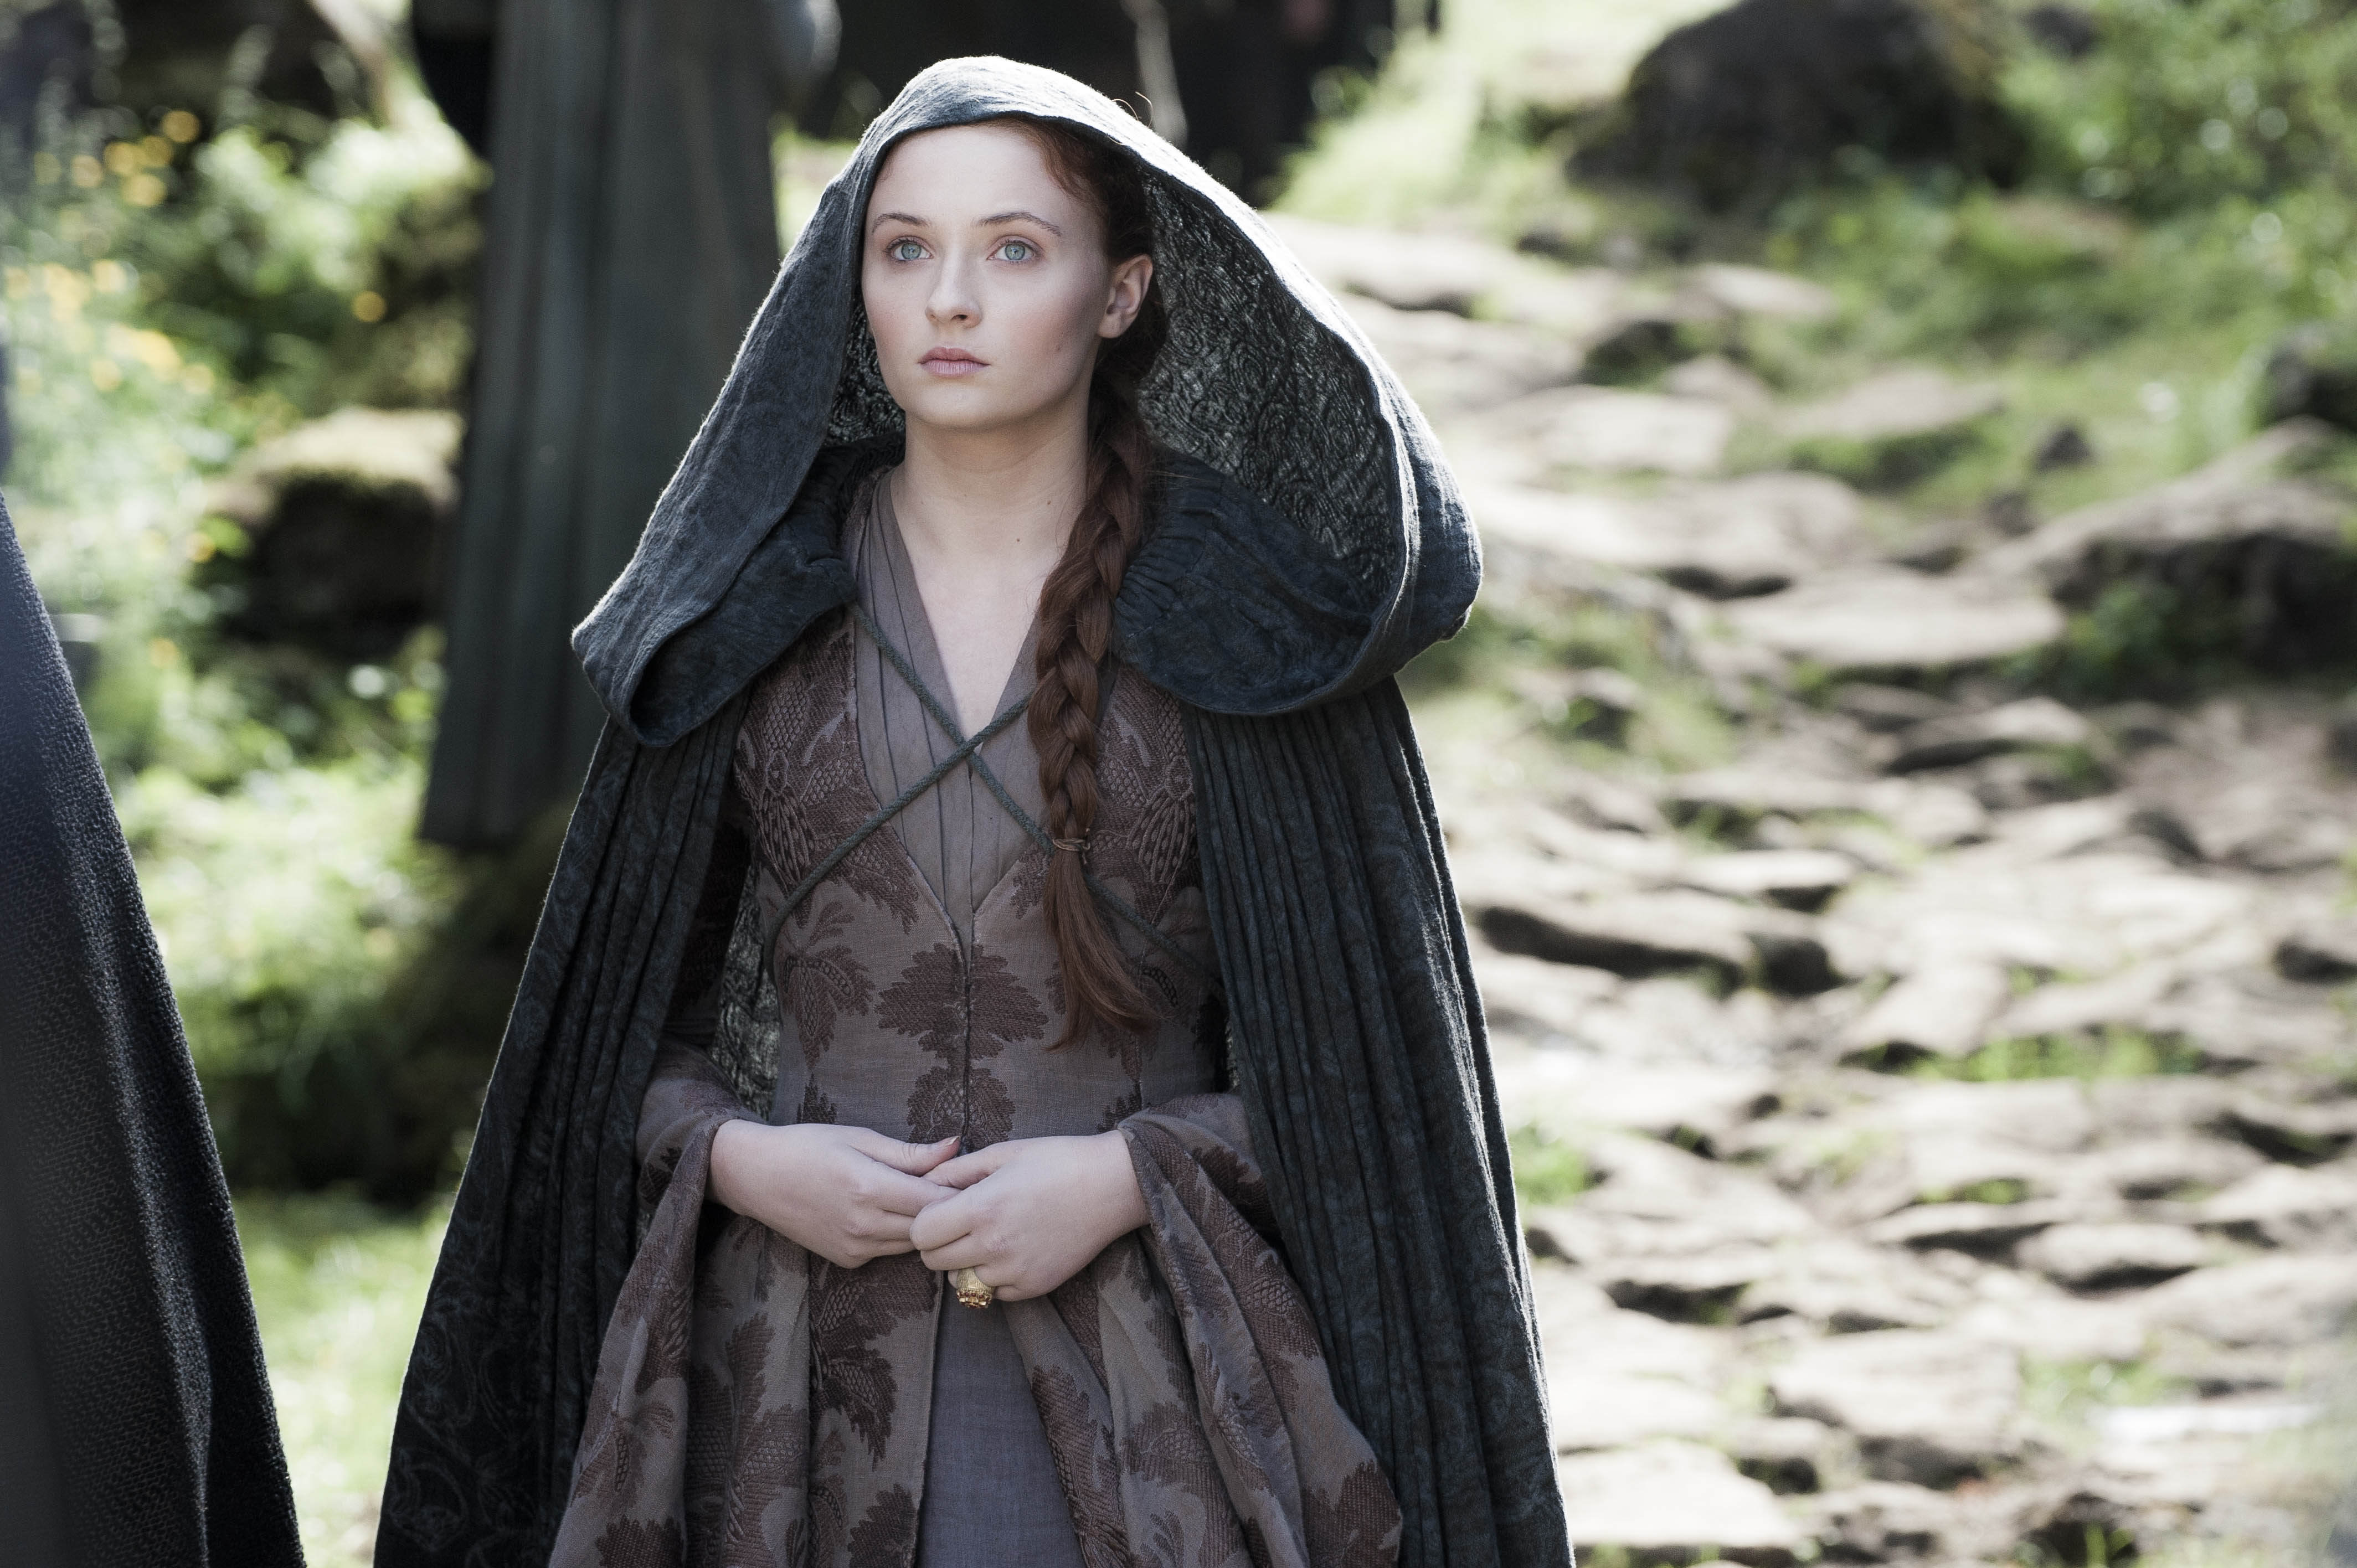 Sansa Stark Is P*ssed Off At How You Pronounce Her Name Season 4 Episode 5 First of His Name game of thrones 37070107 4256 2832